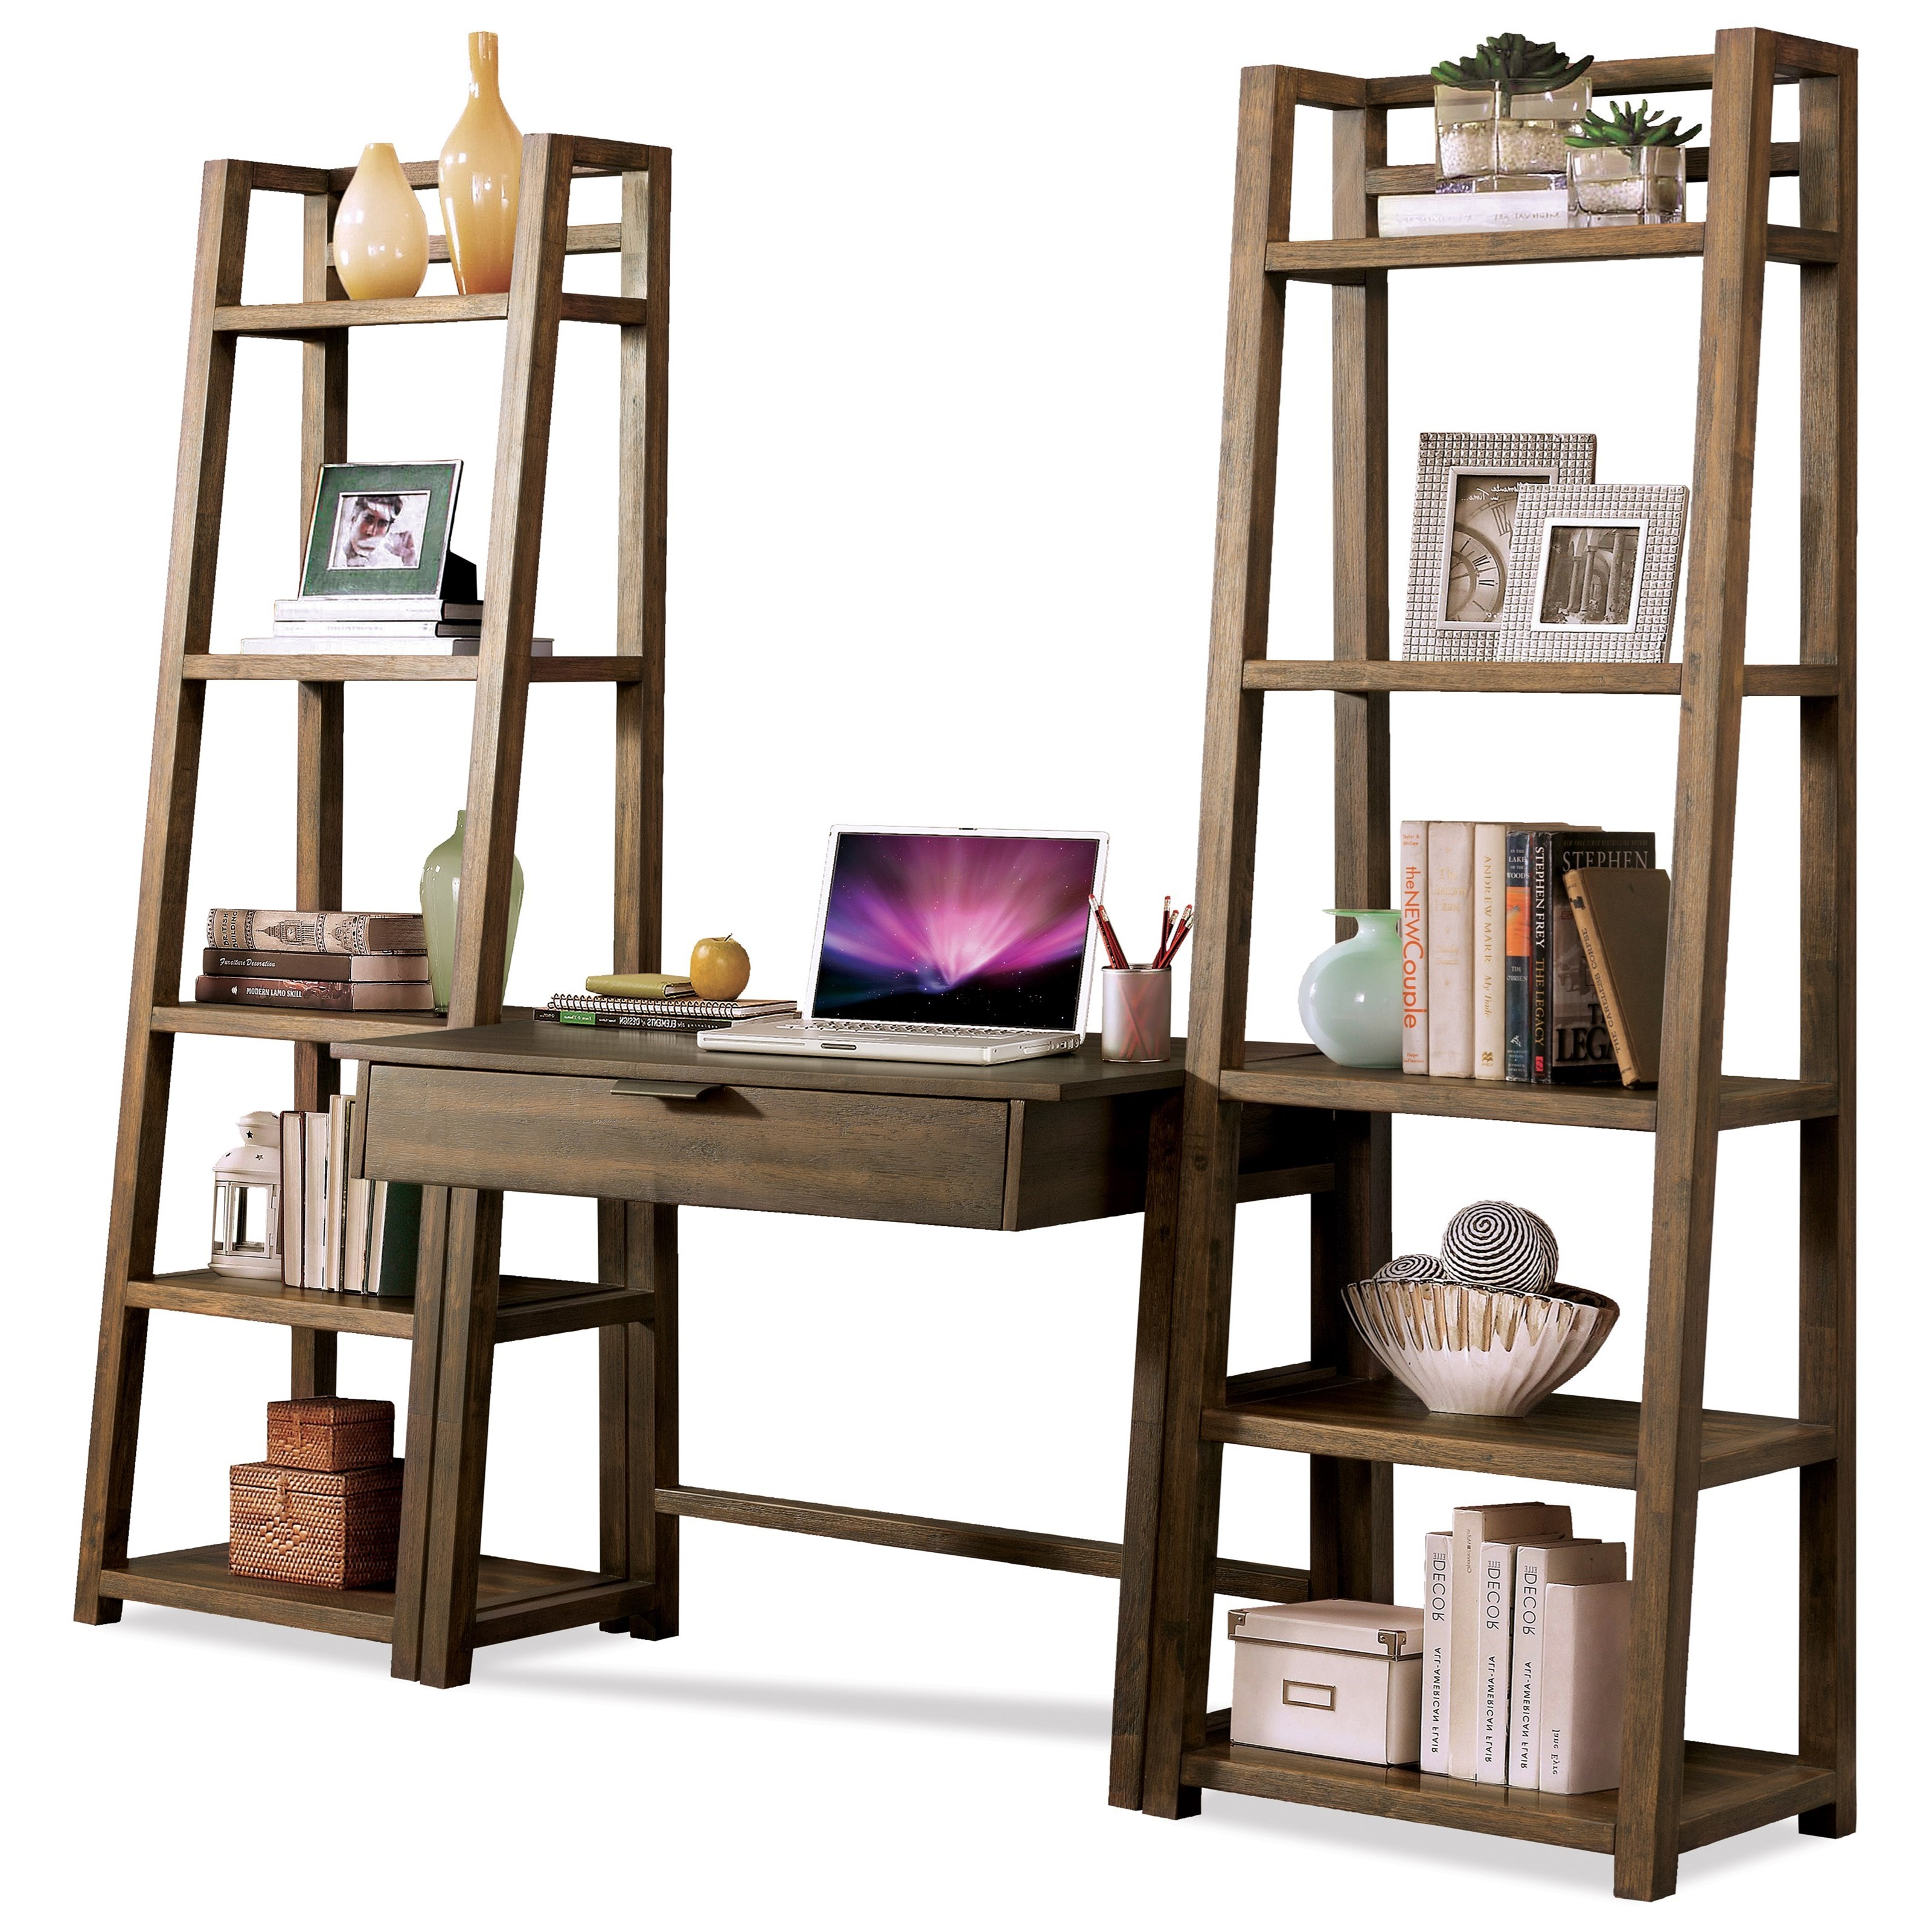 Riverside Furniture Perspectives Office Wall Setup - Item Number: 28032+2x8